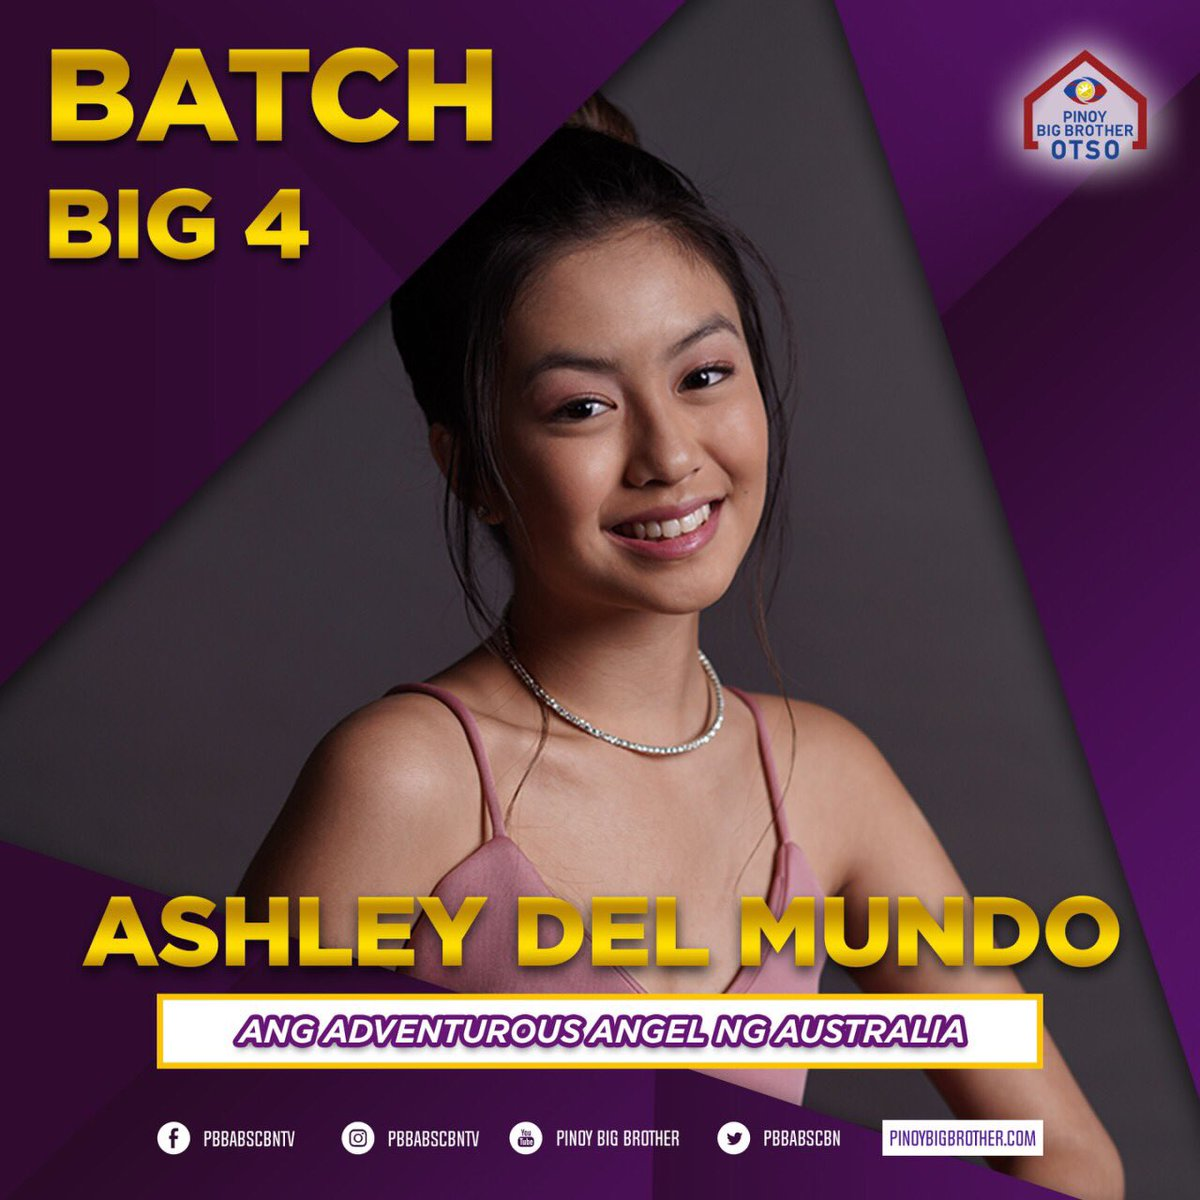 Pinoy Big Brother's photo on #PBB8Batch3BigFour